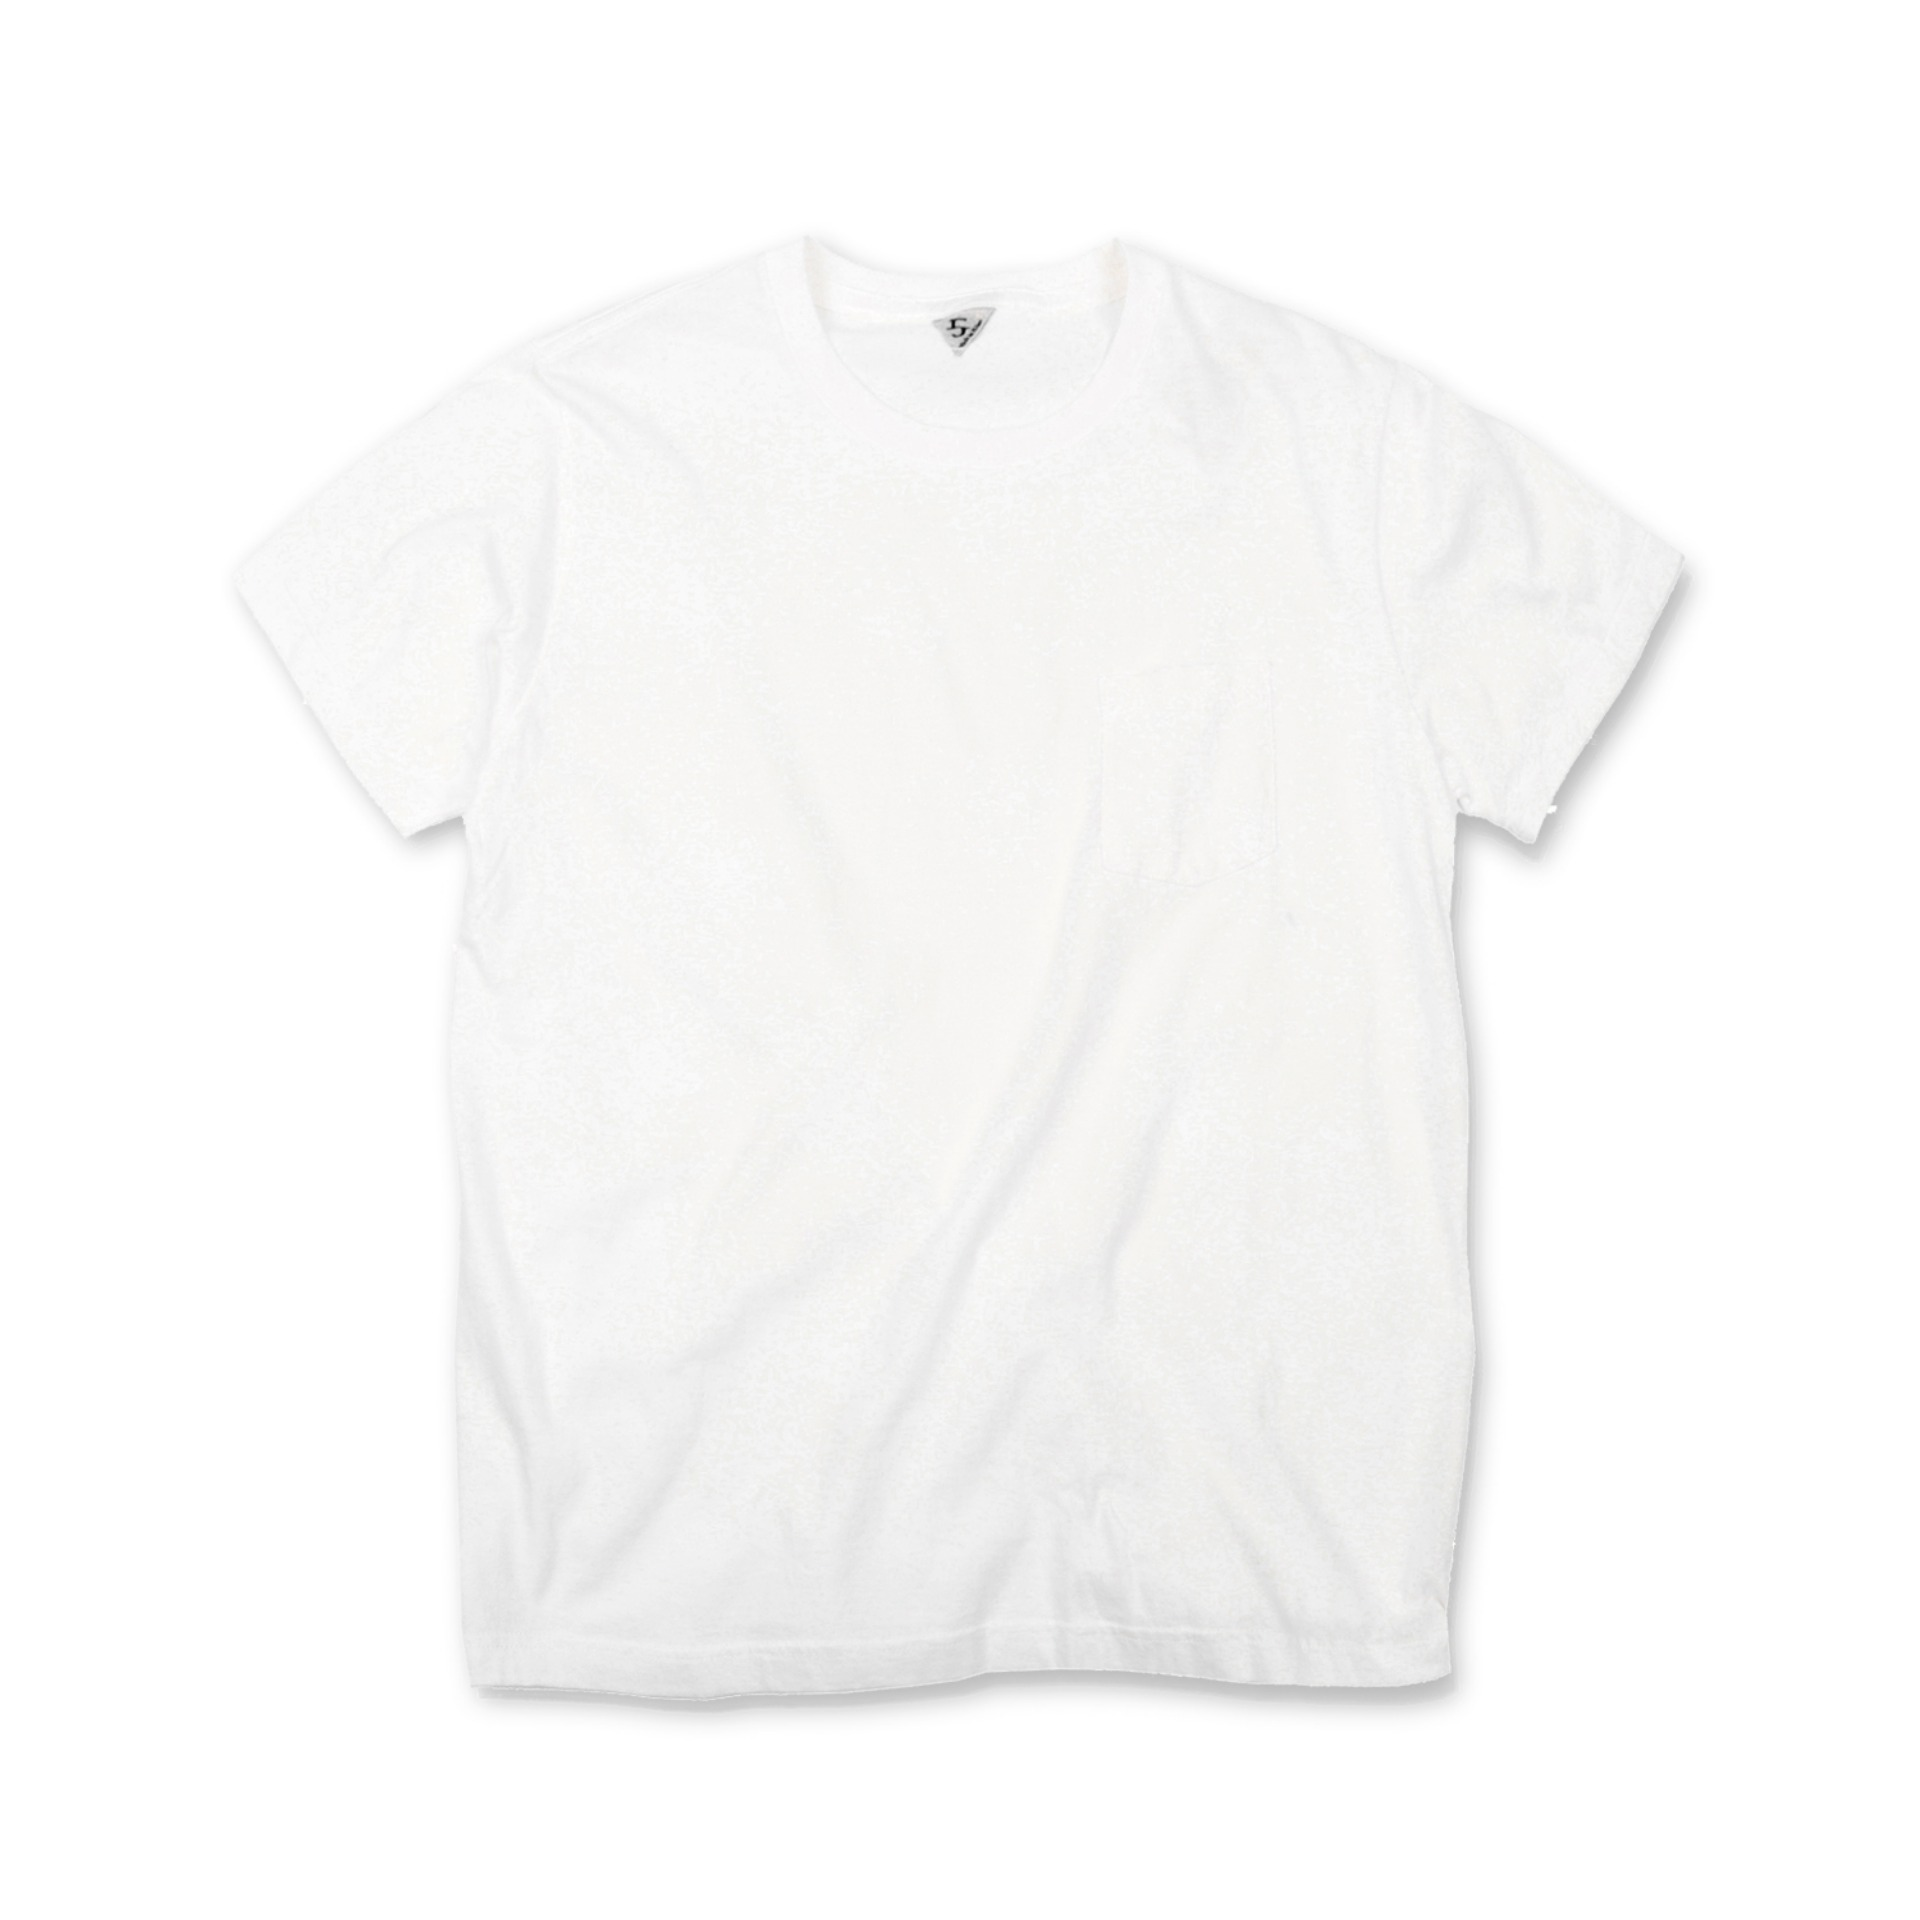 [SUNNY]Pocket T-shirtShort Sleeve T-Shirt(White)